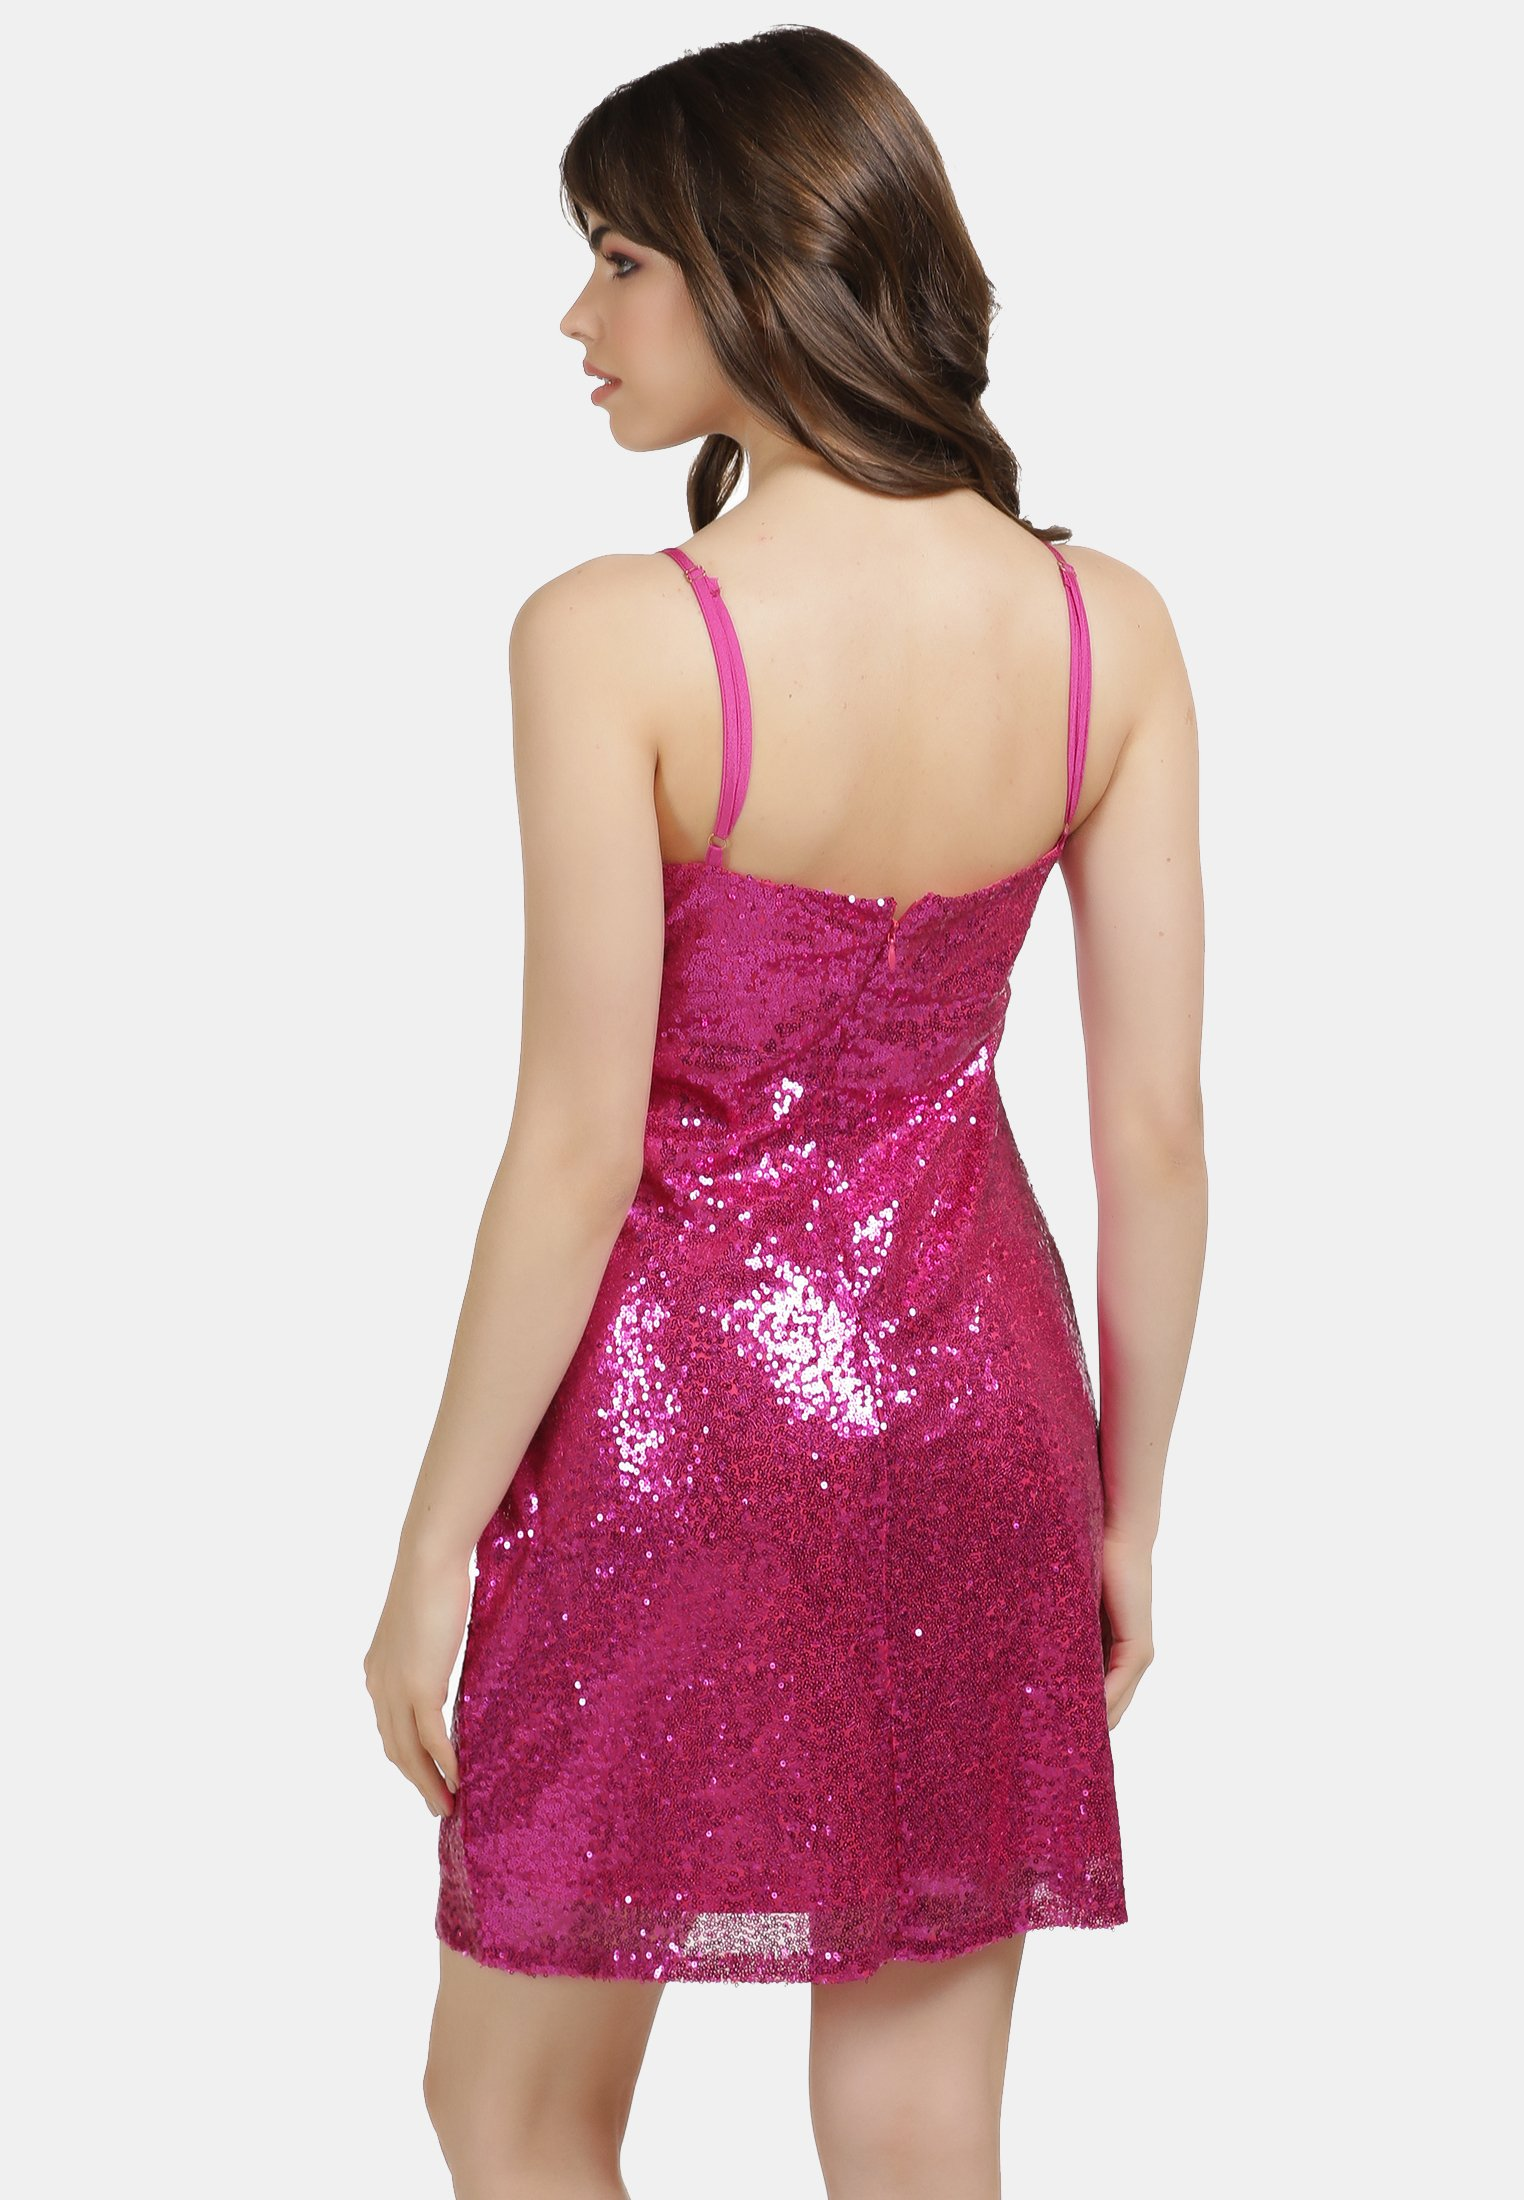 Factory Price Women's Clothing myMo PAILLETTENKLEID Cocktail dress / Party dress pink 6uJSl79GZ